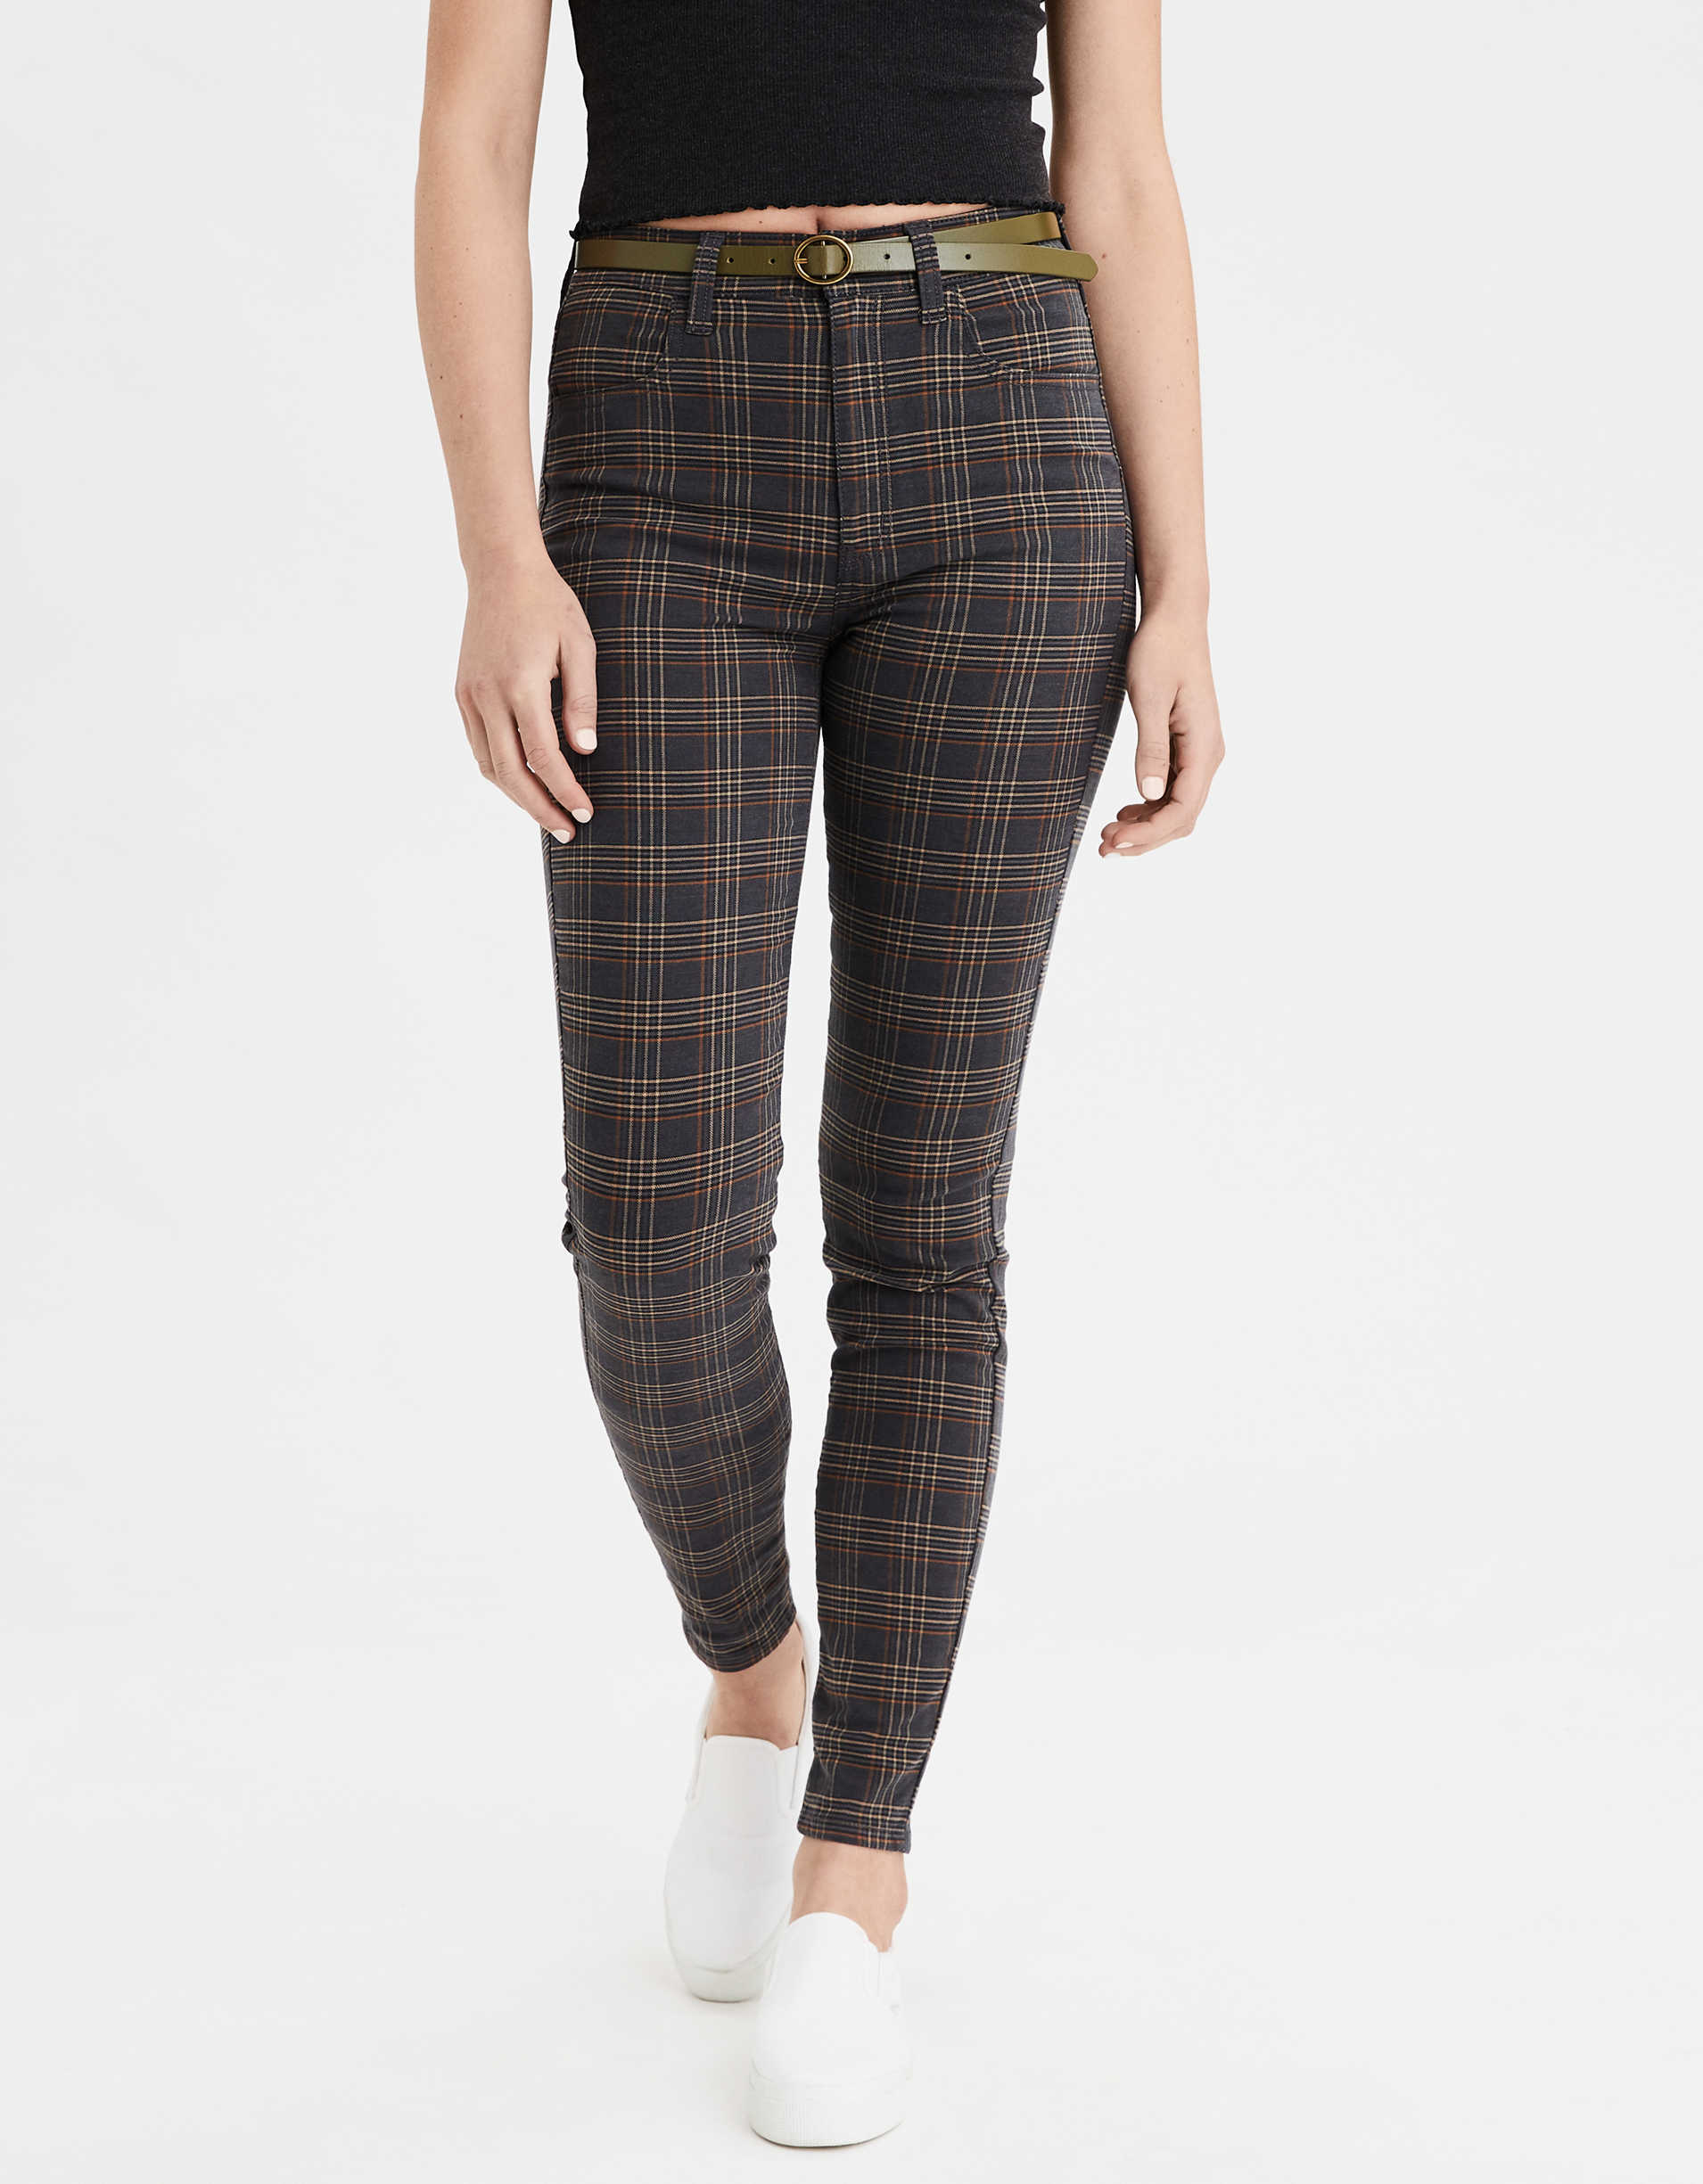 Super High-Waisted Plaid Jegging